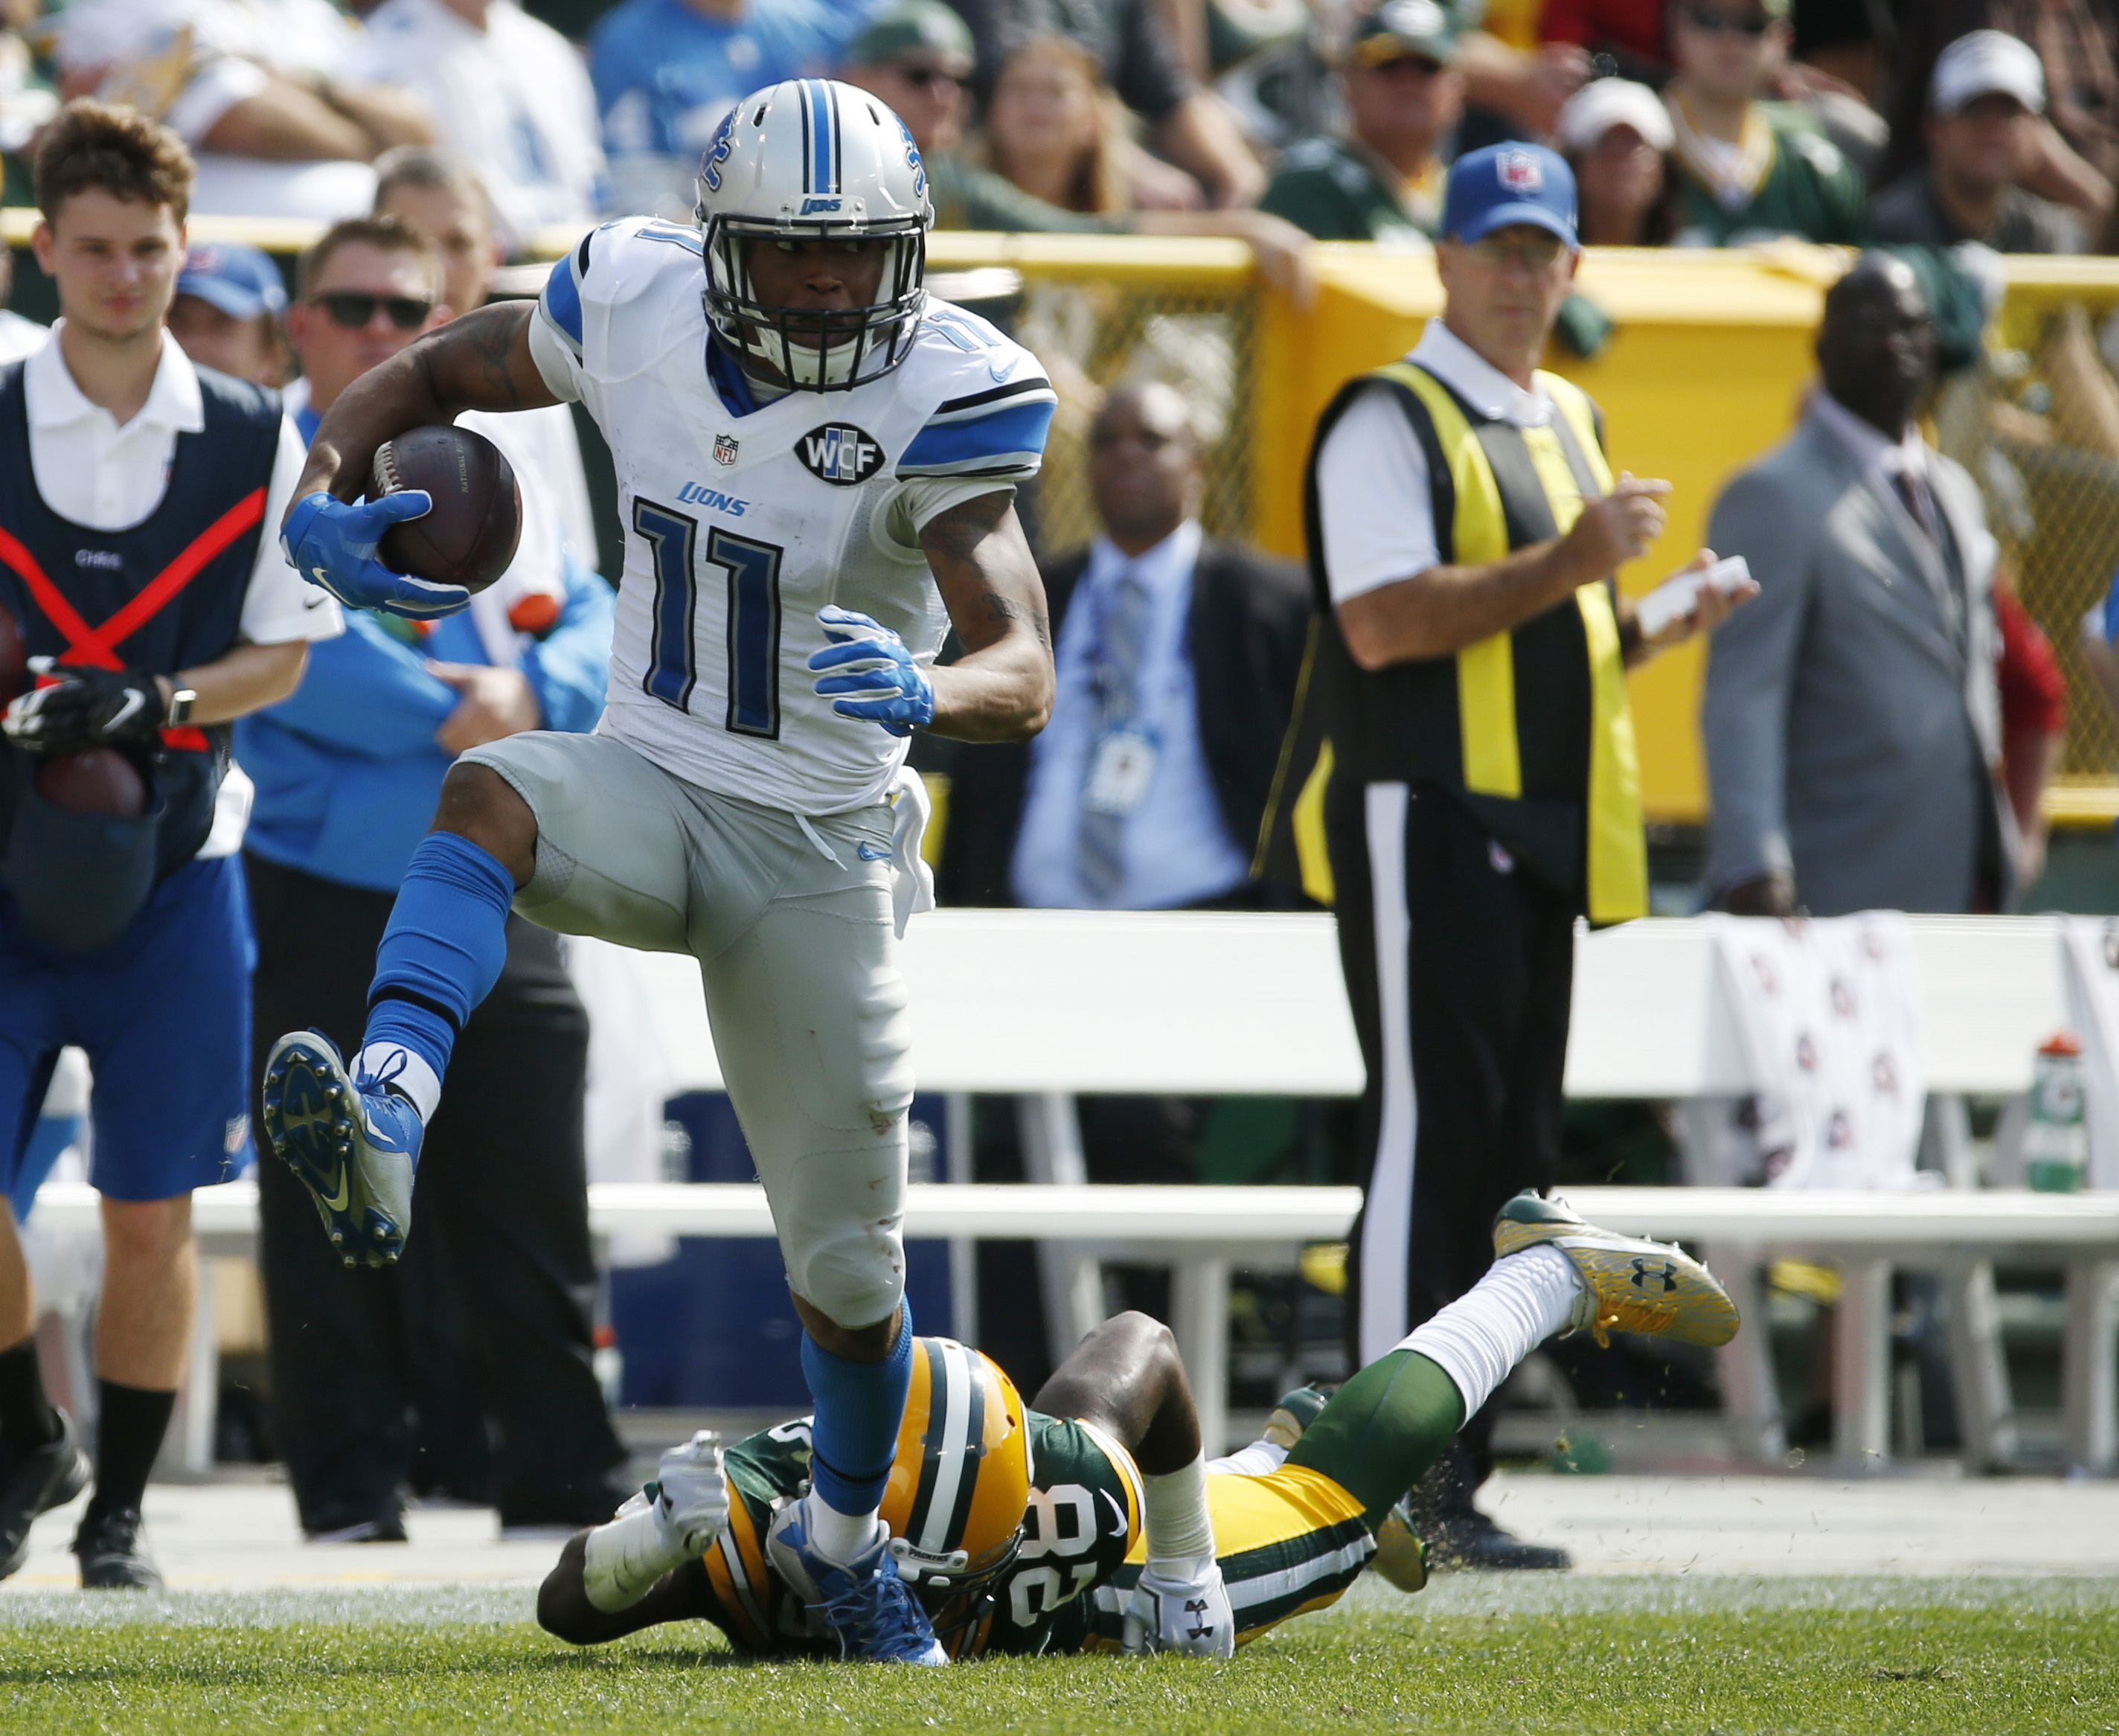 Detroit Lions' Marvin Jones (11) gets past Green Bay Packers' Josh Hawkins (28) for a touchdown catch during the first half of an NFL football game Sunday, Sept. 25, 2016, in Green Bay, Wis. (AP Photo/Mike Roemer)